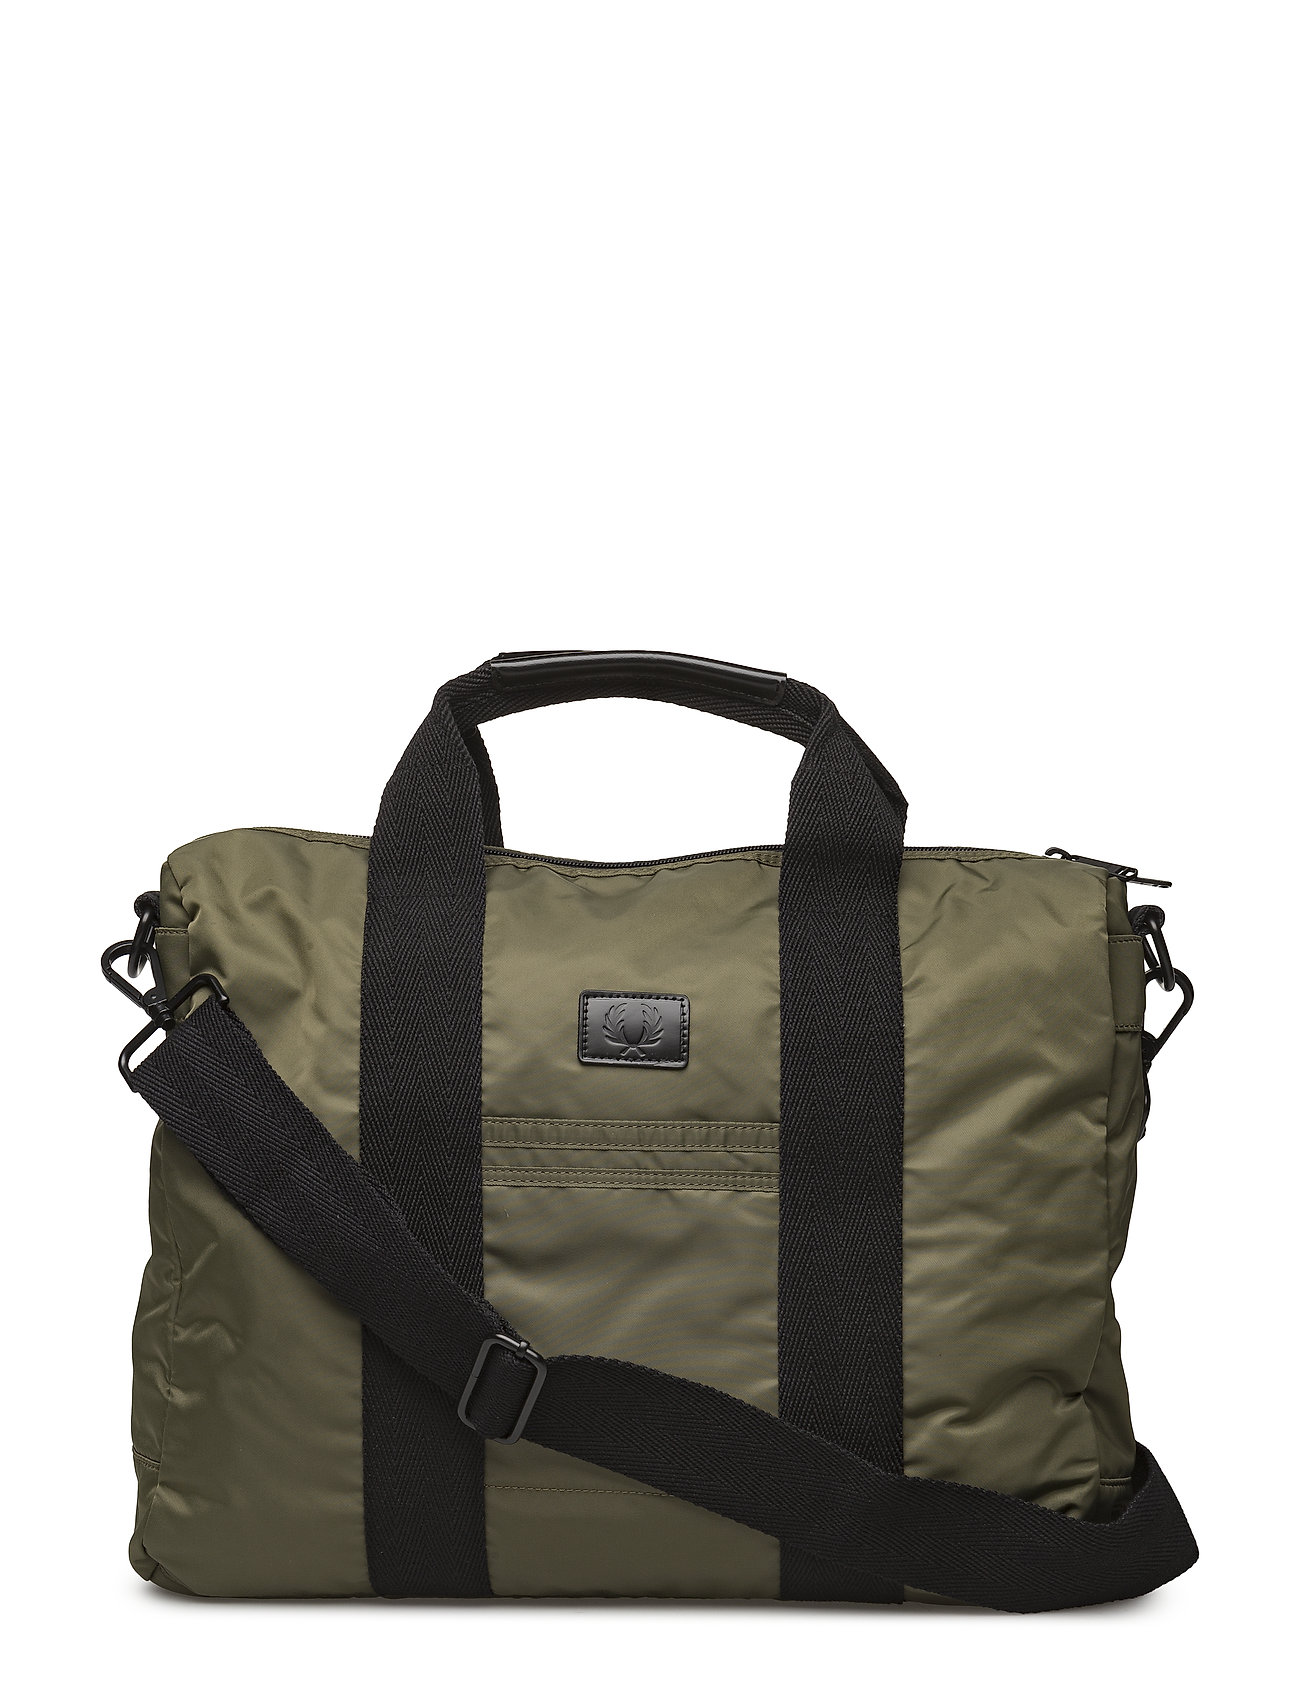 Fred Perry NYLON WORK BAG - OLIVE